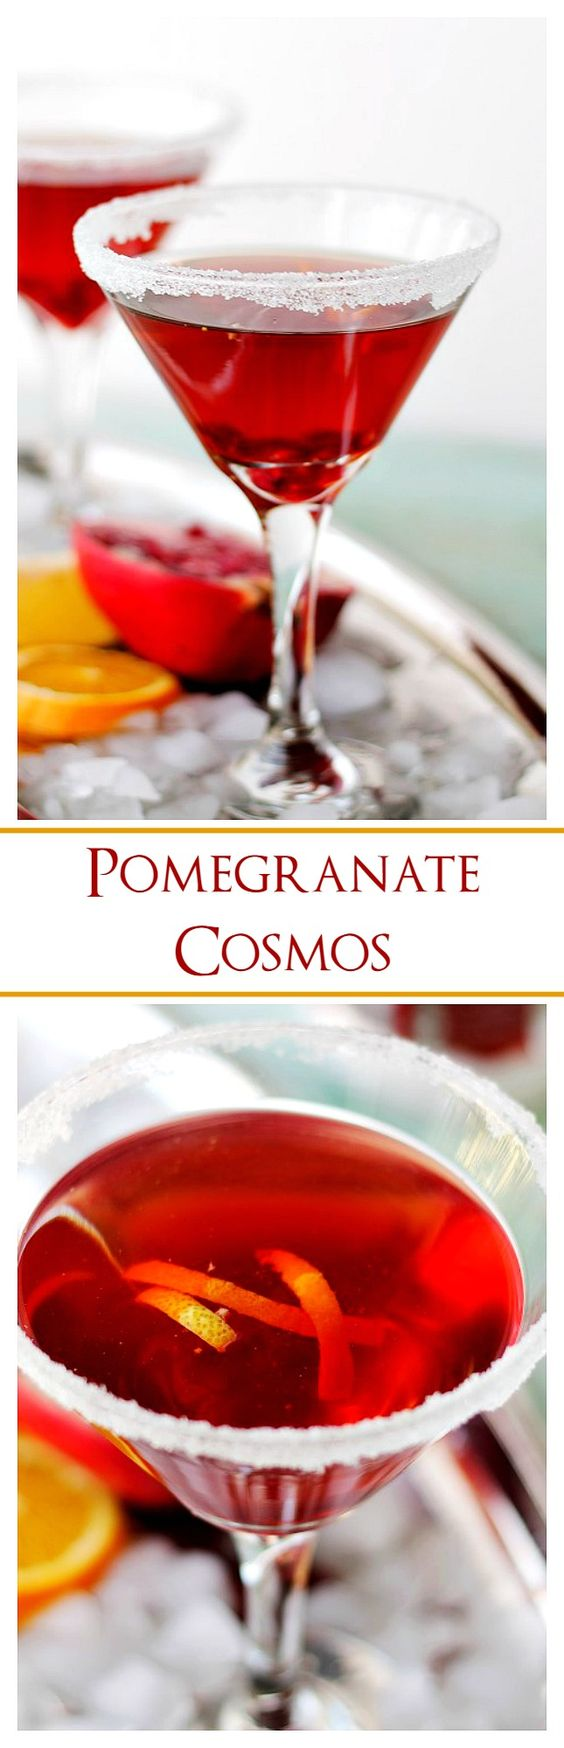 pomegranate pomegranate cosmopolitans pomegranate cosmos pomegranate ...